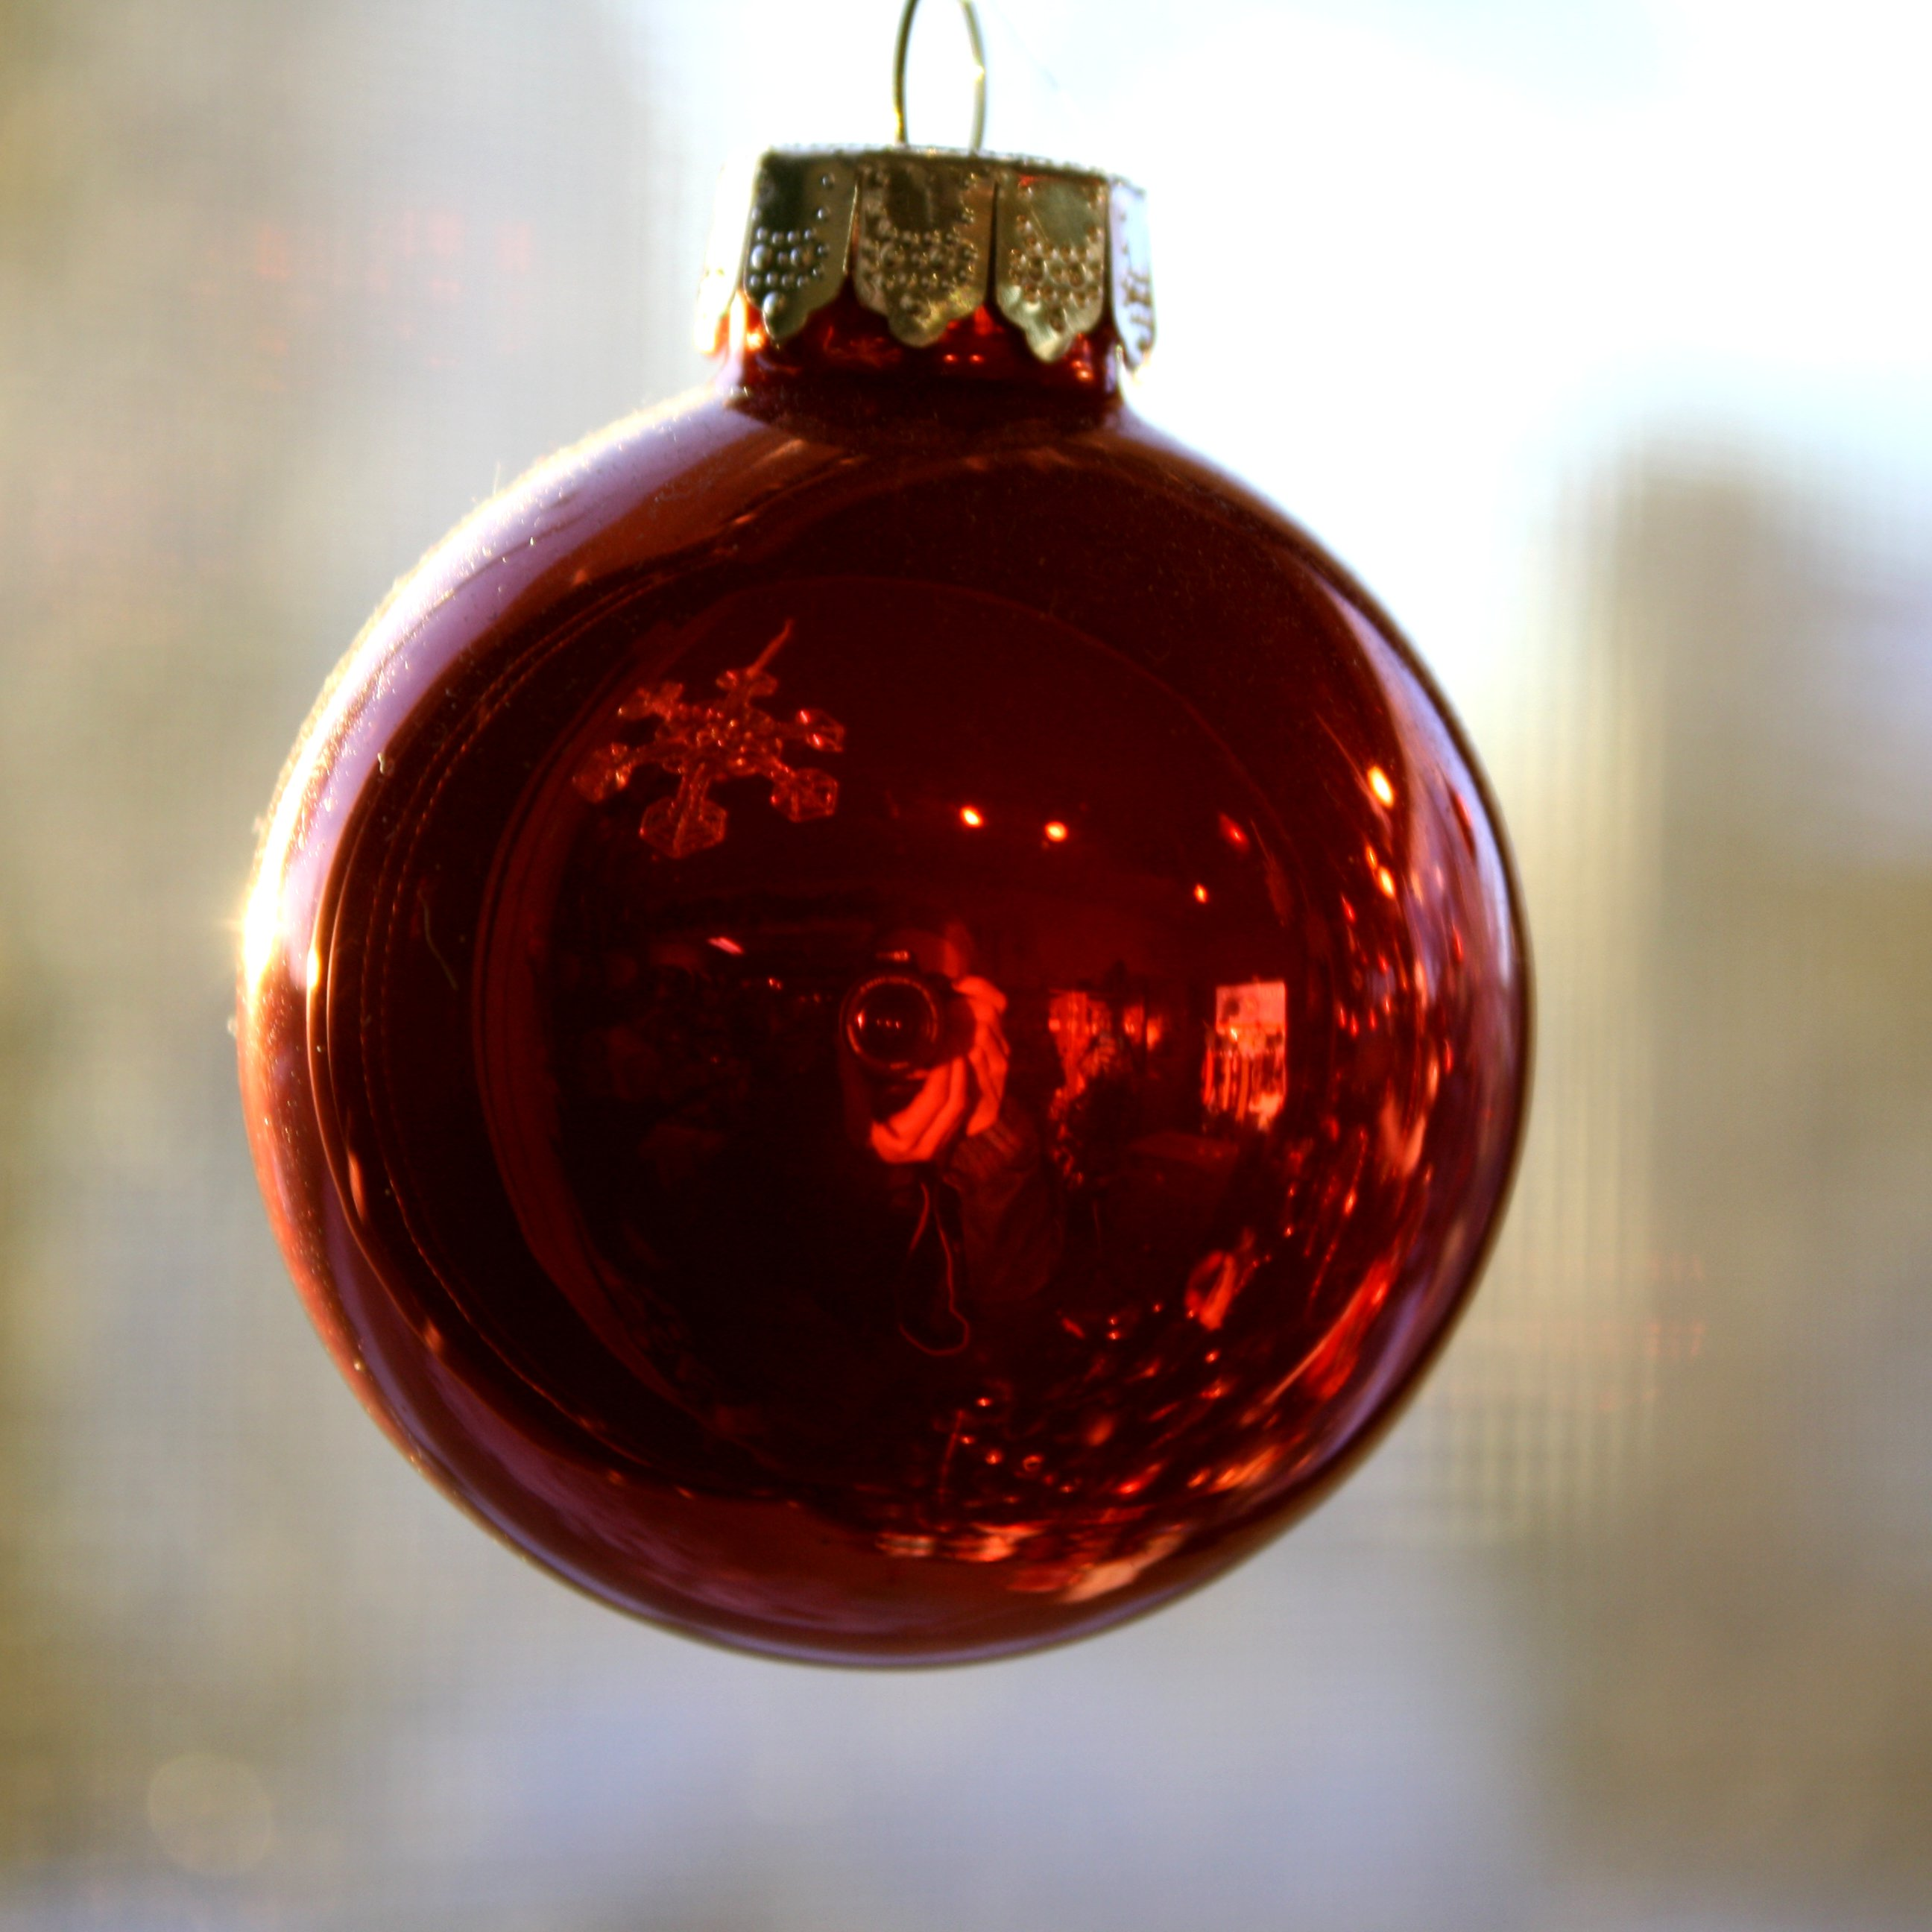 Red Christmas Ball Ornament Picture | Free Photograph | Photos ...